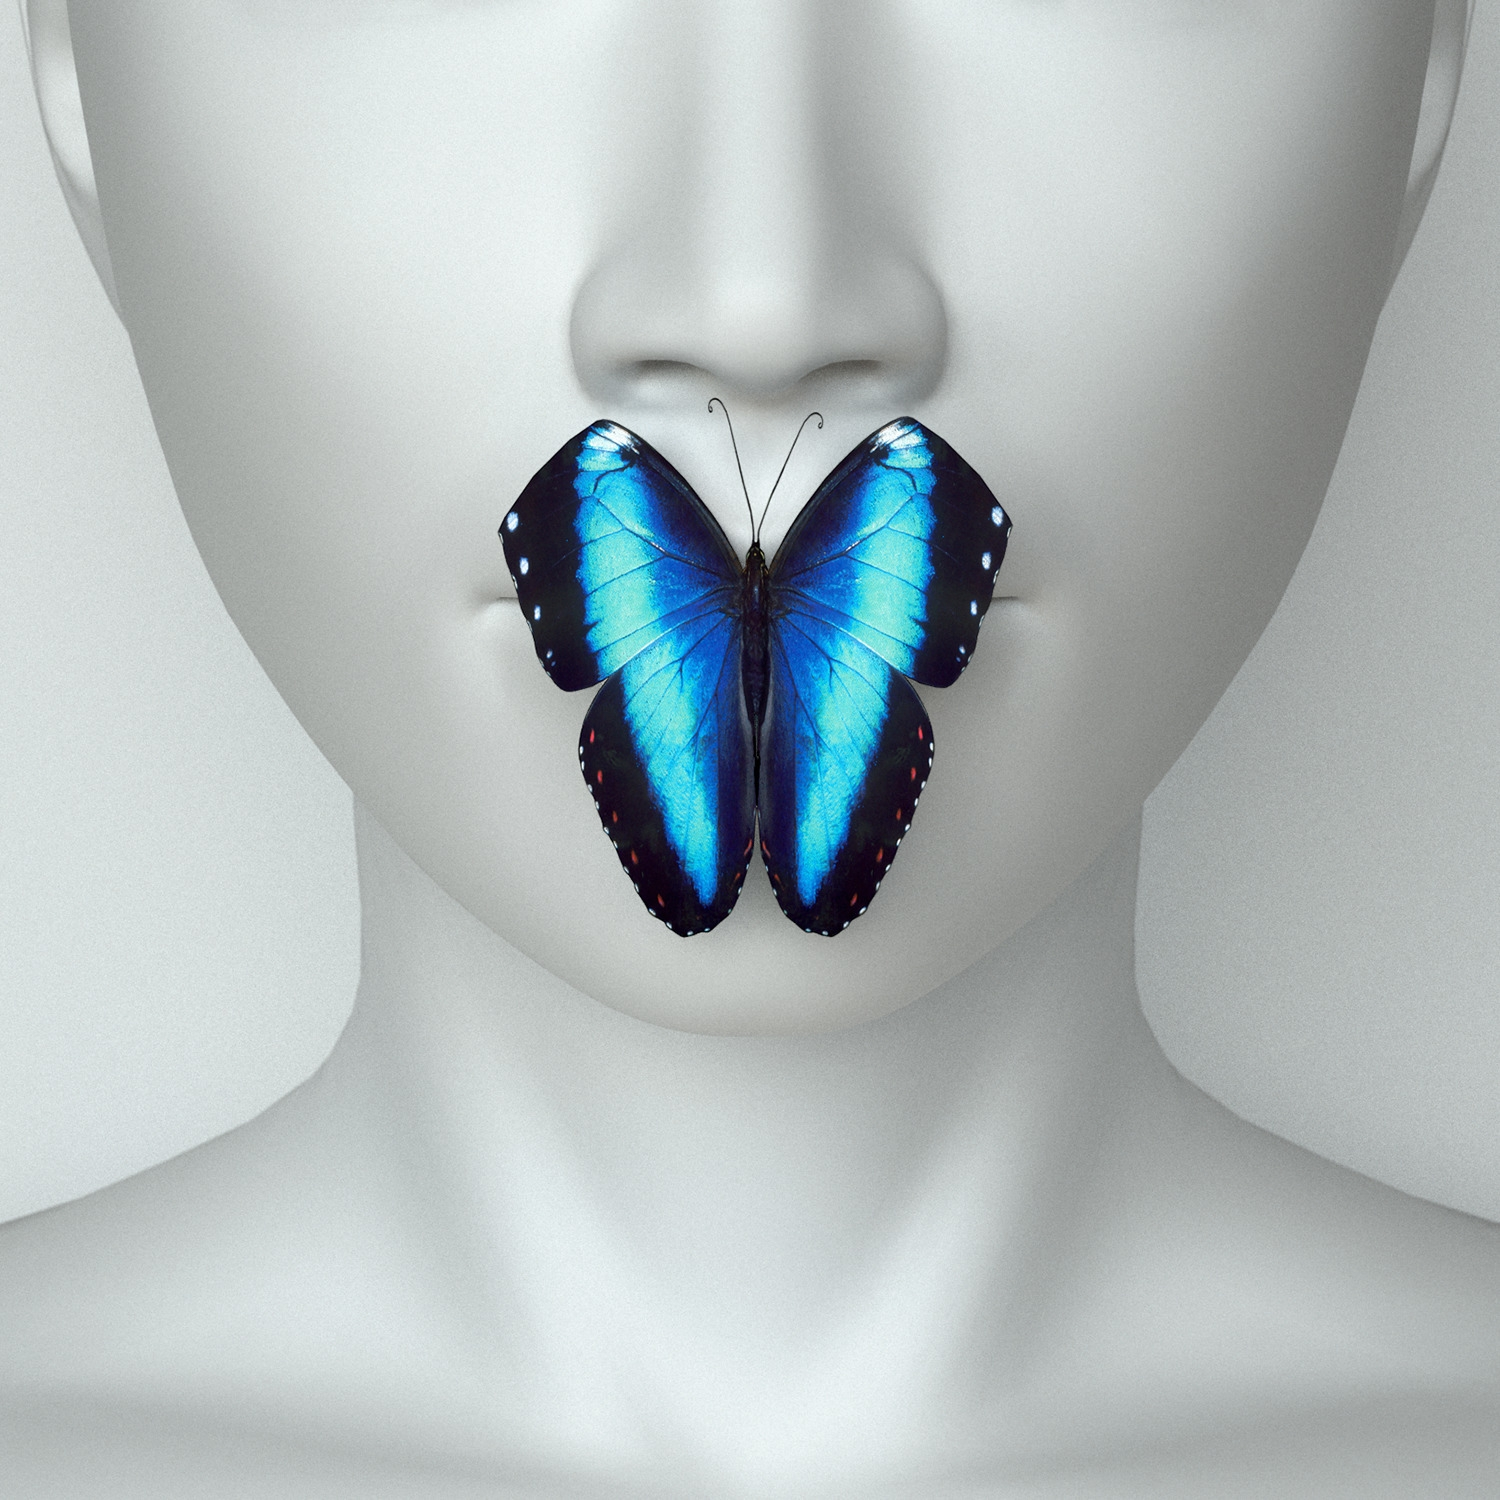 Secret - butterfly, 3D, Digital - z3rogravity | ello